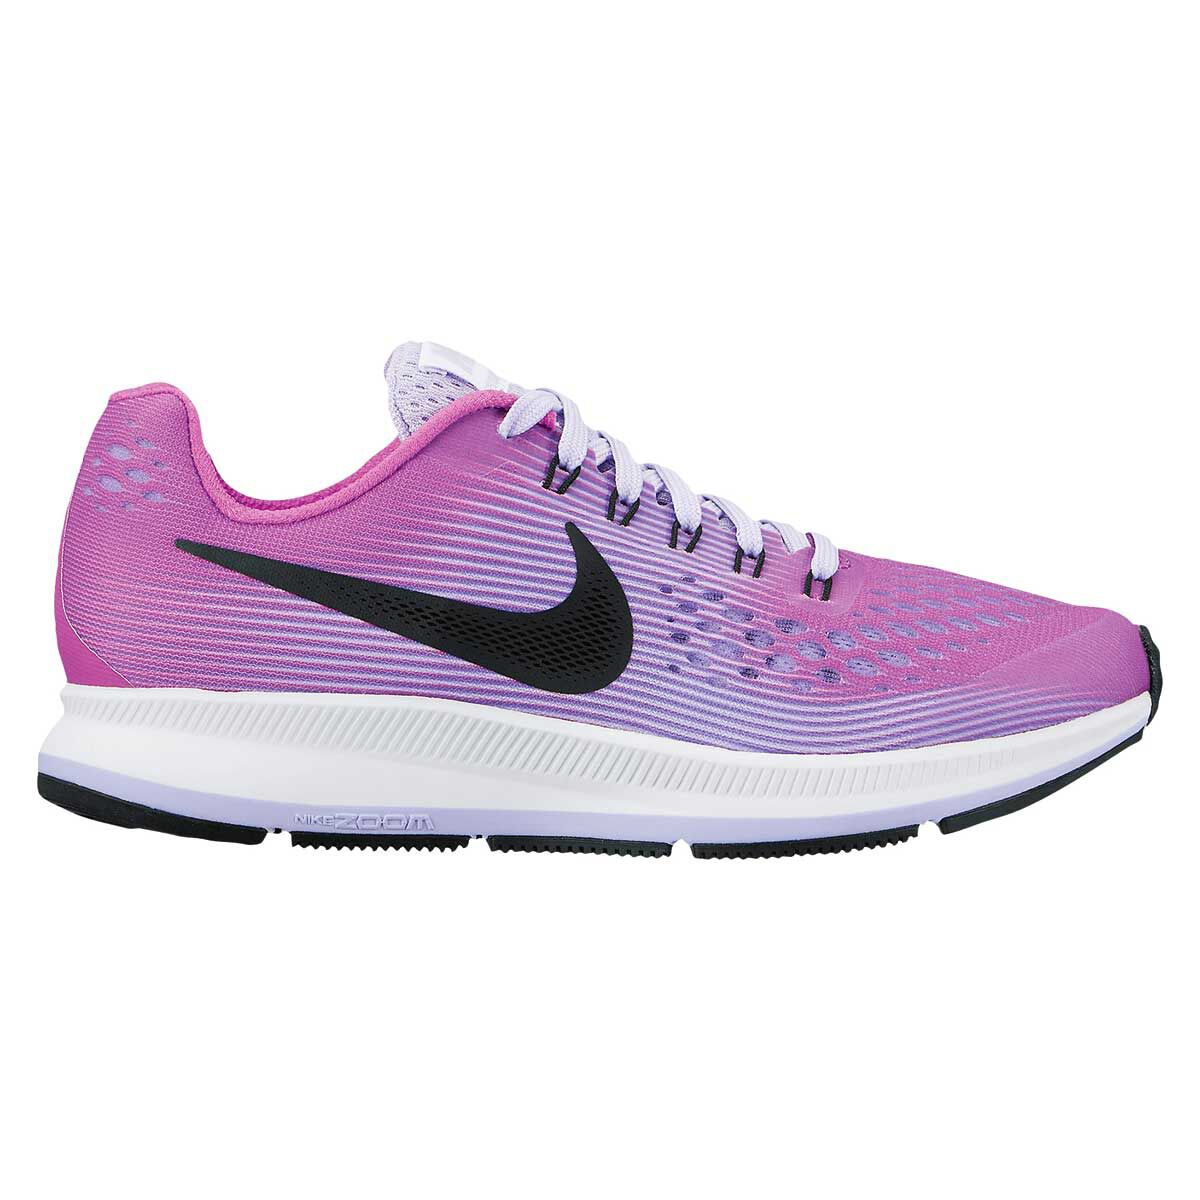 a1af5d1275f ... new zealand nike zoom pegasus 34 kids running shoes purple black us 4  purple black 7842b